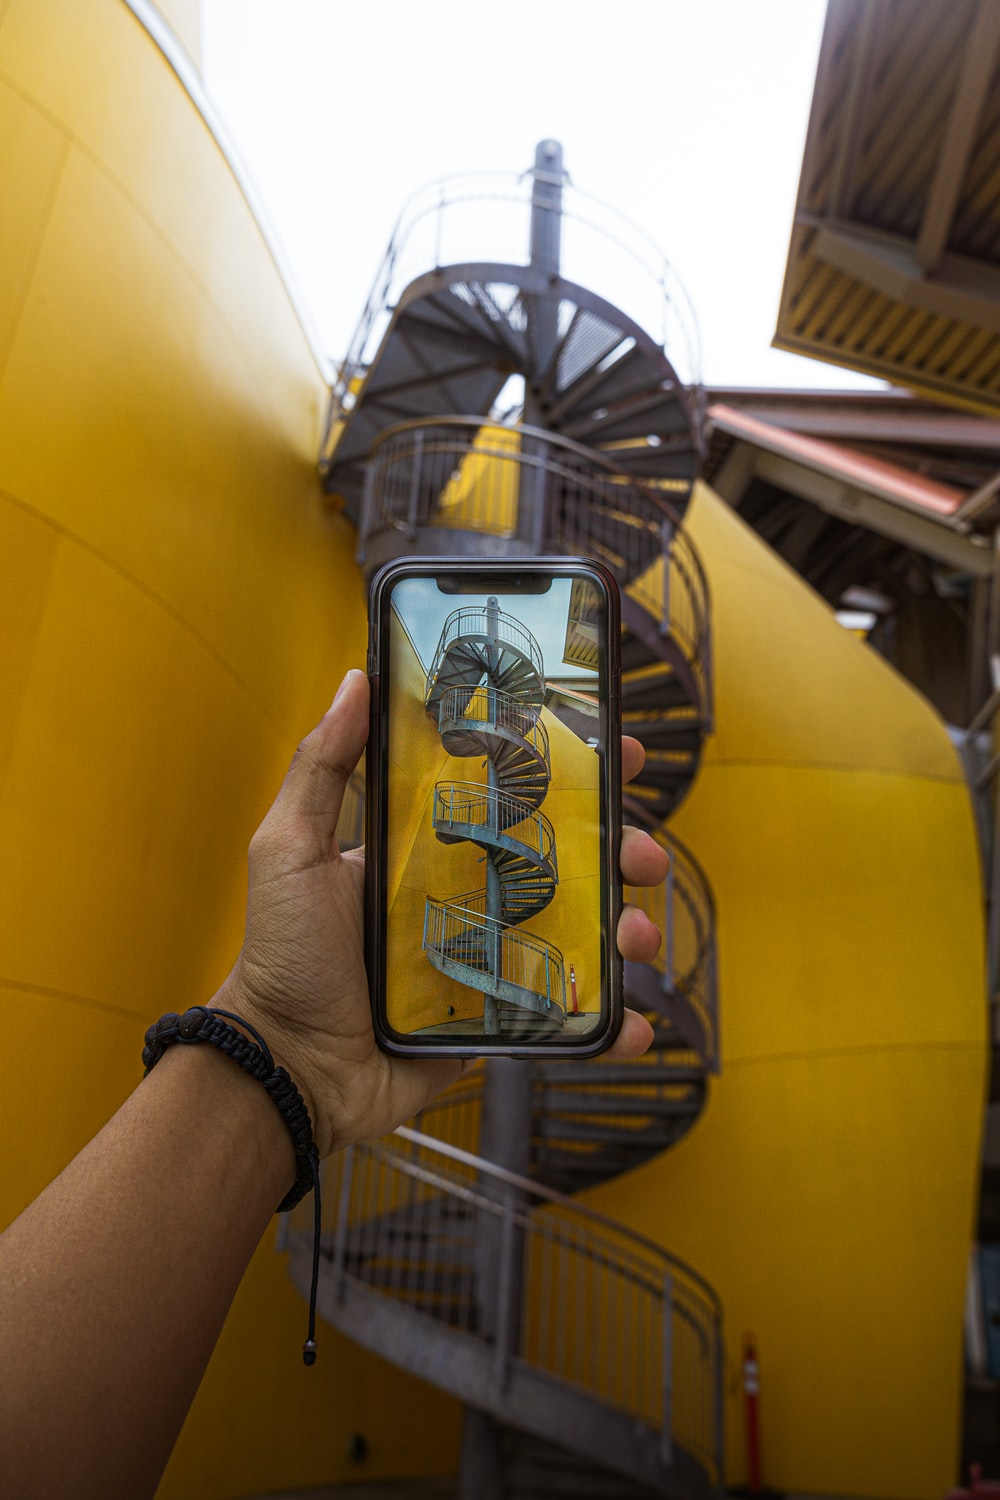 smartphone in front of gray spiral staircase